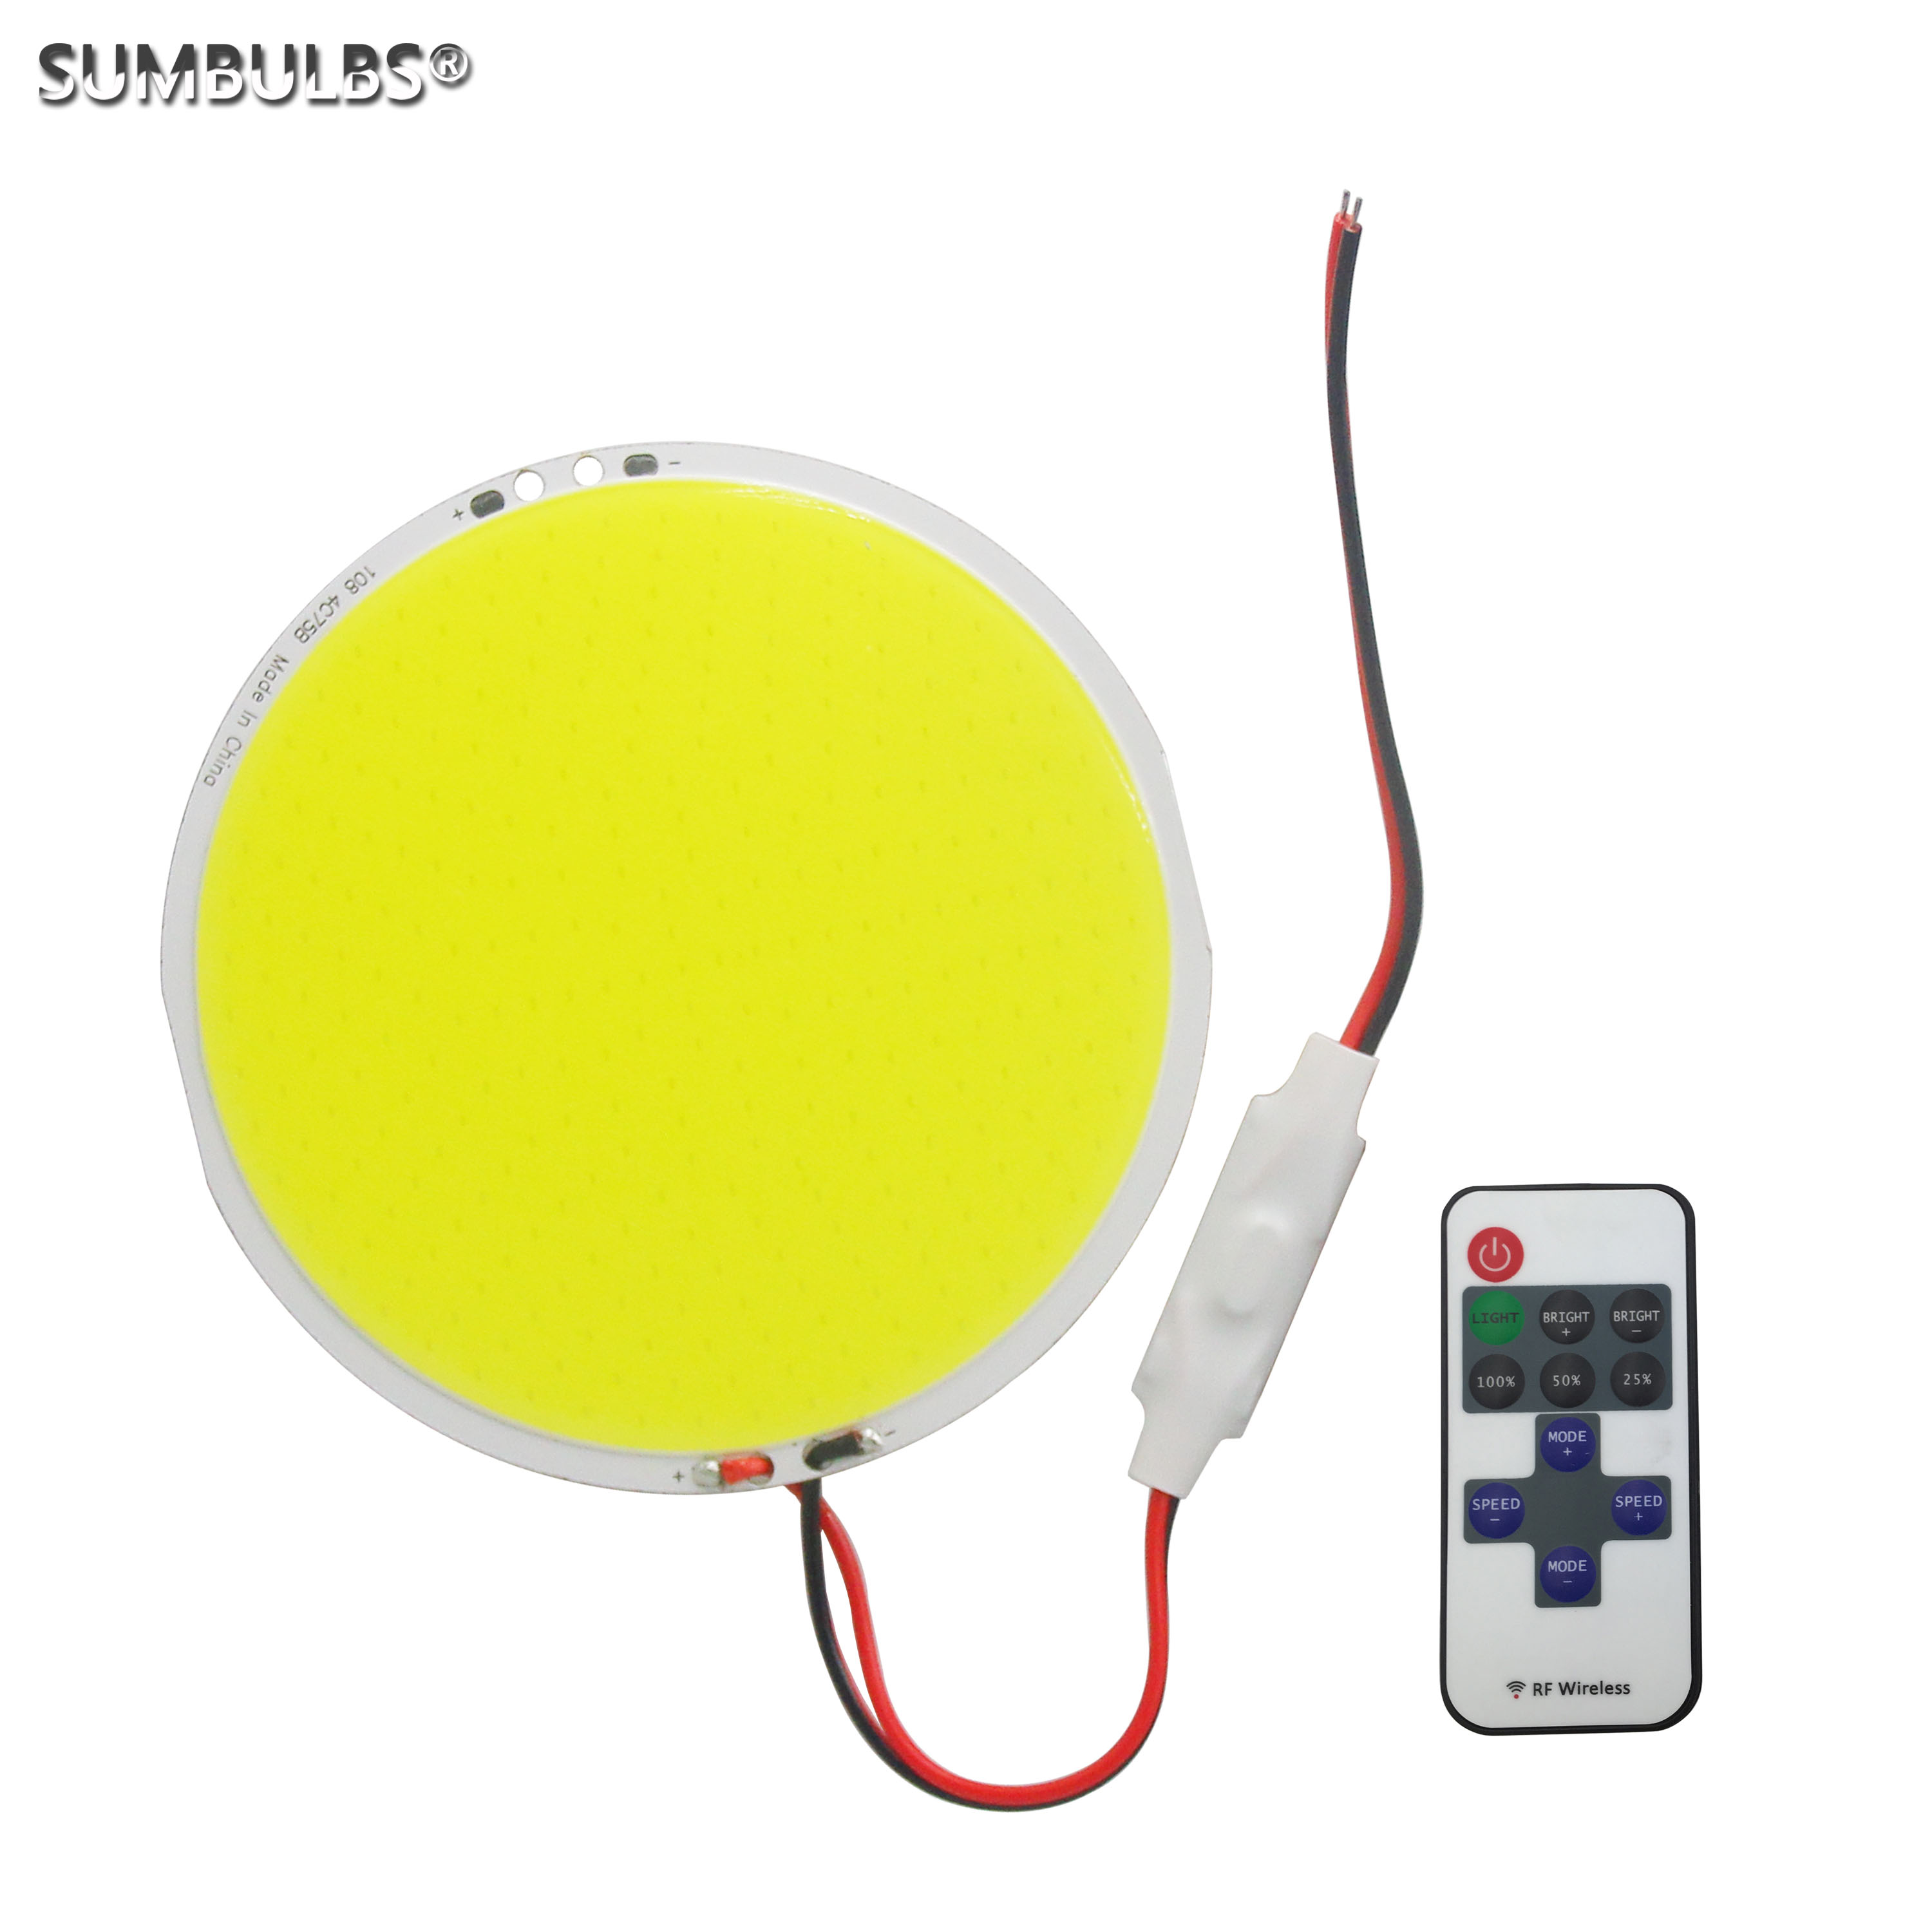 Dimmable Round DC 12V 50W LED High Power 108mm COB LED Panel Light source with dimmer led Lamp Cold White bulb image